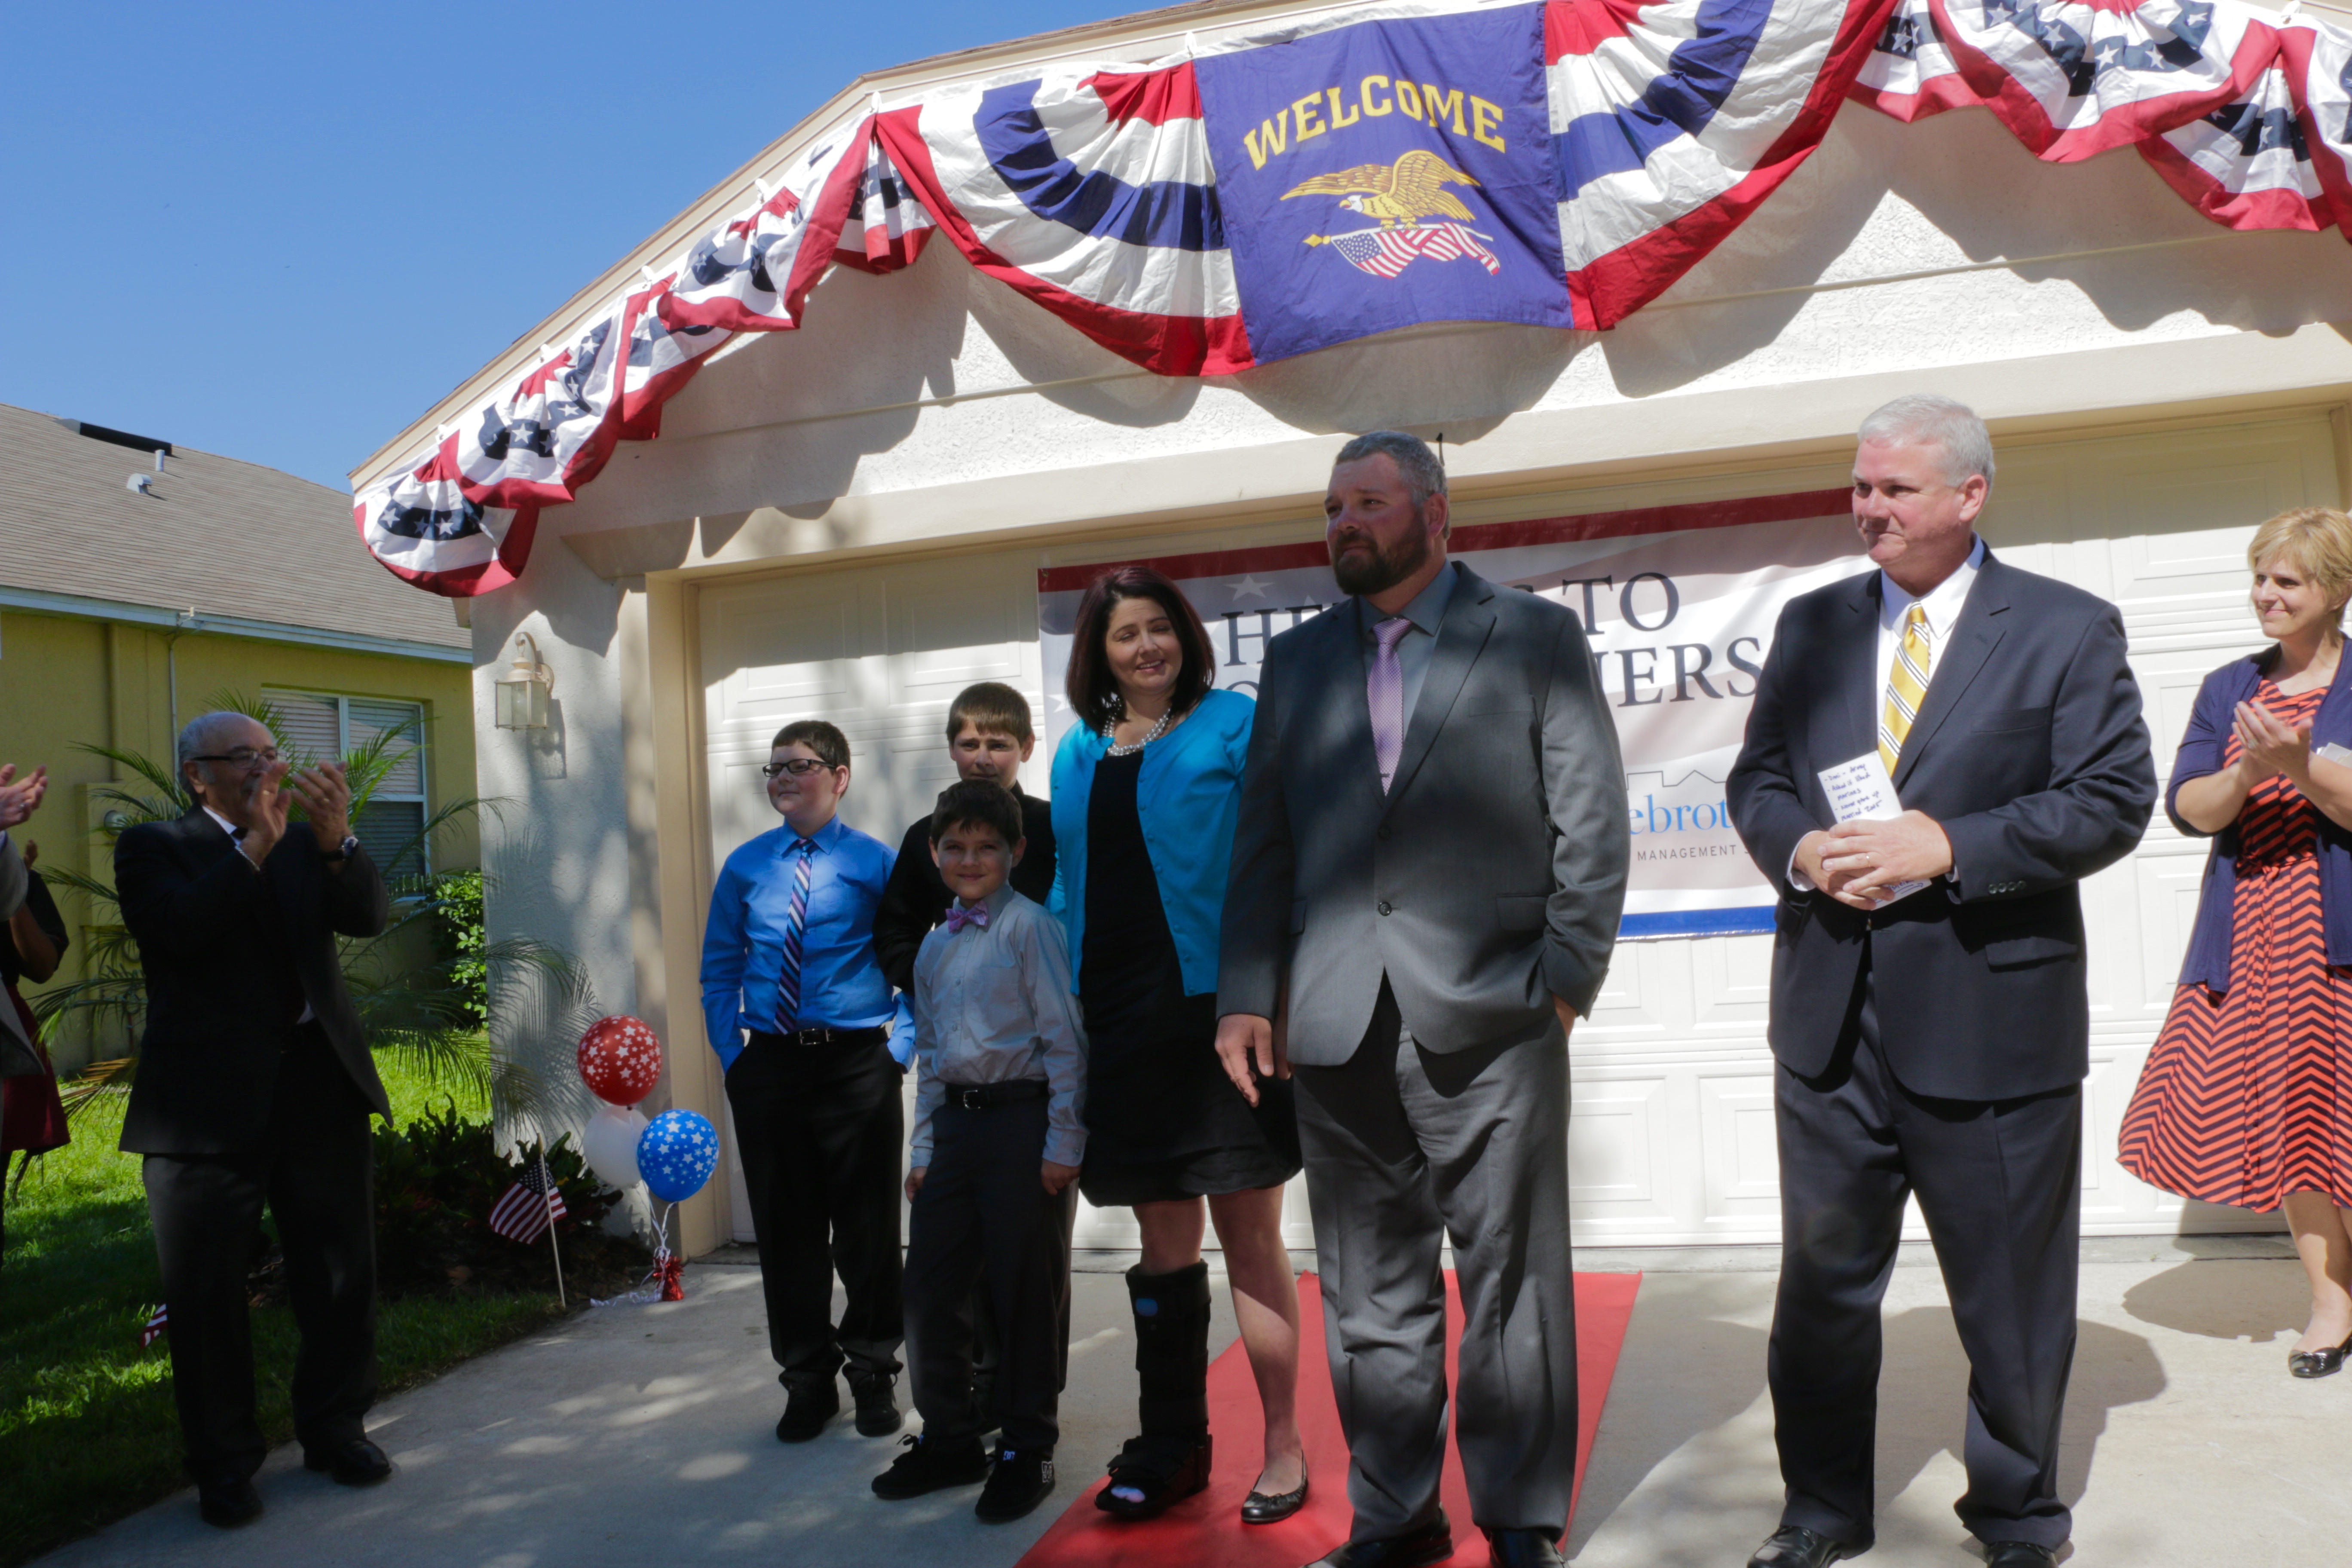 Cory Lewis and his family are presented with a new home in Apopka, Florida